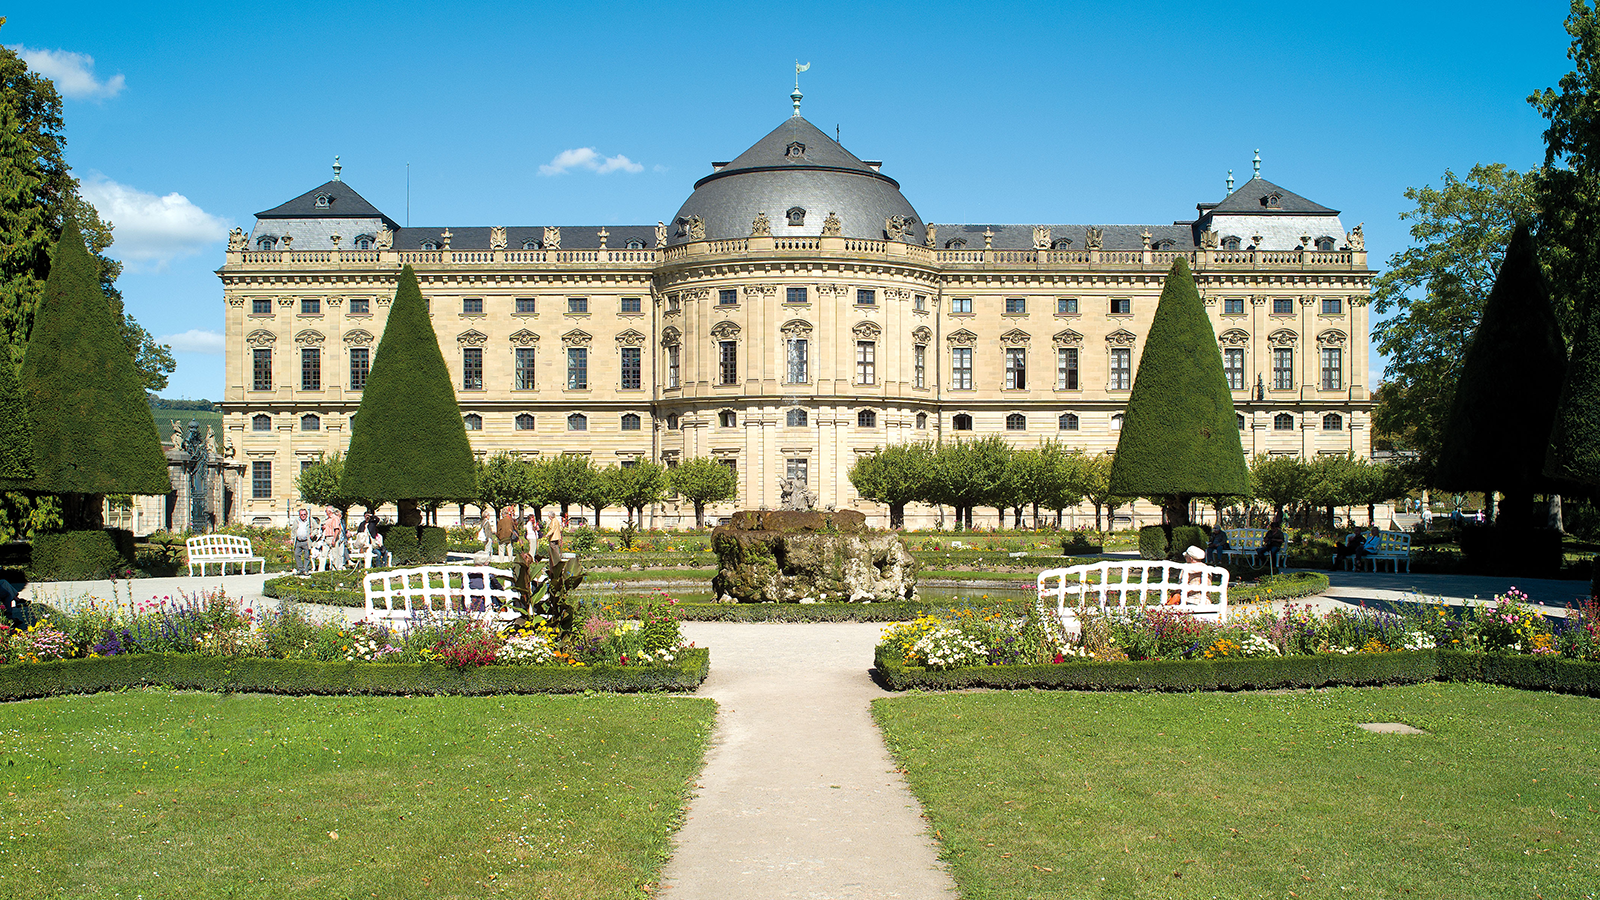 Global Culture Galore In Germany 46 Unesco World Heritage Sites Invite You To A Stroll Through History Unesco World Heritage